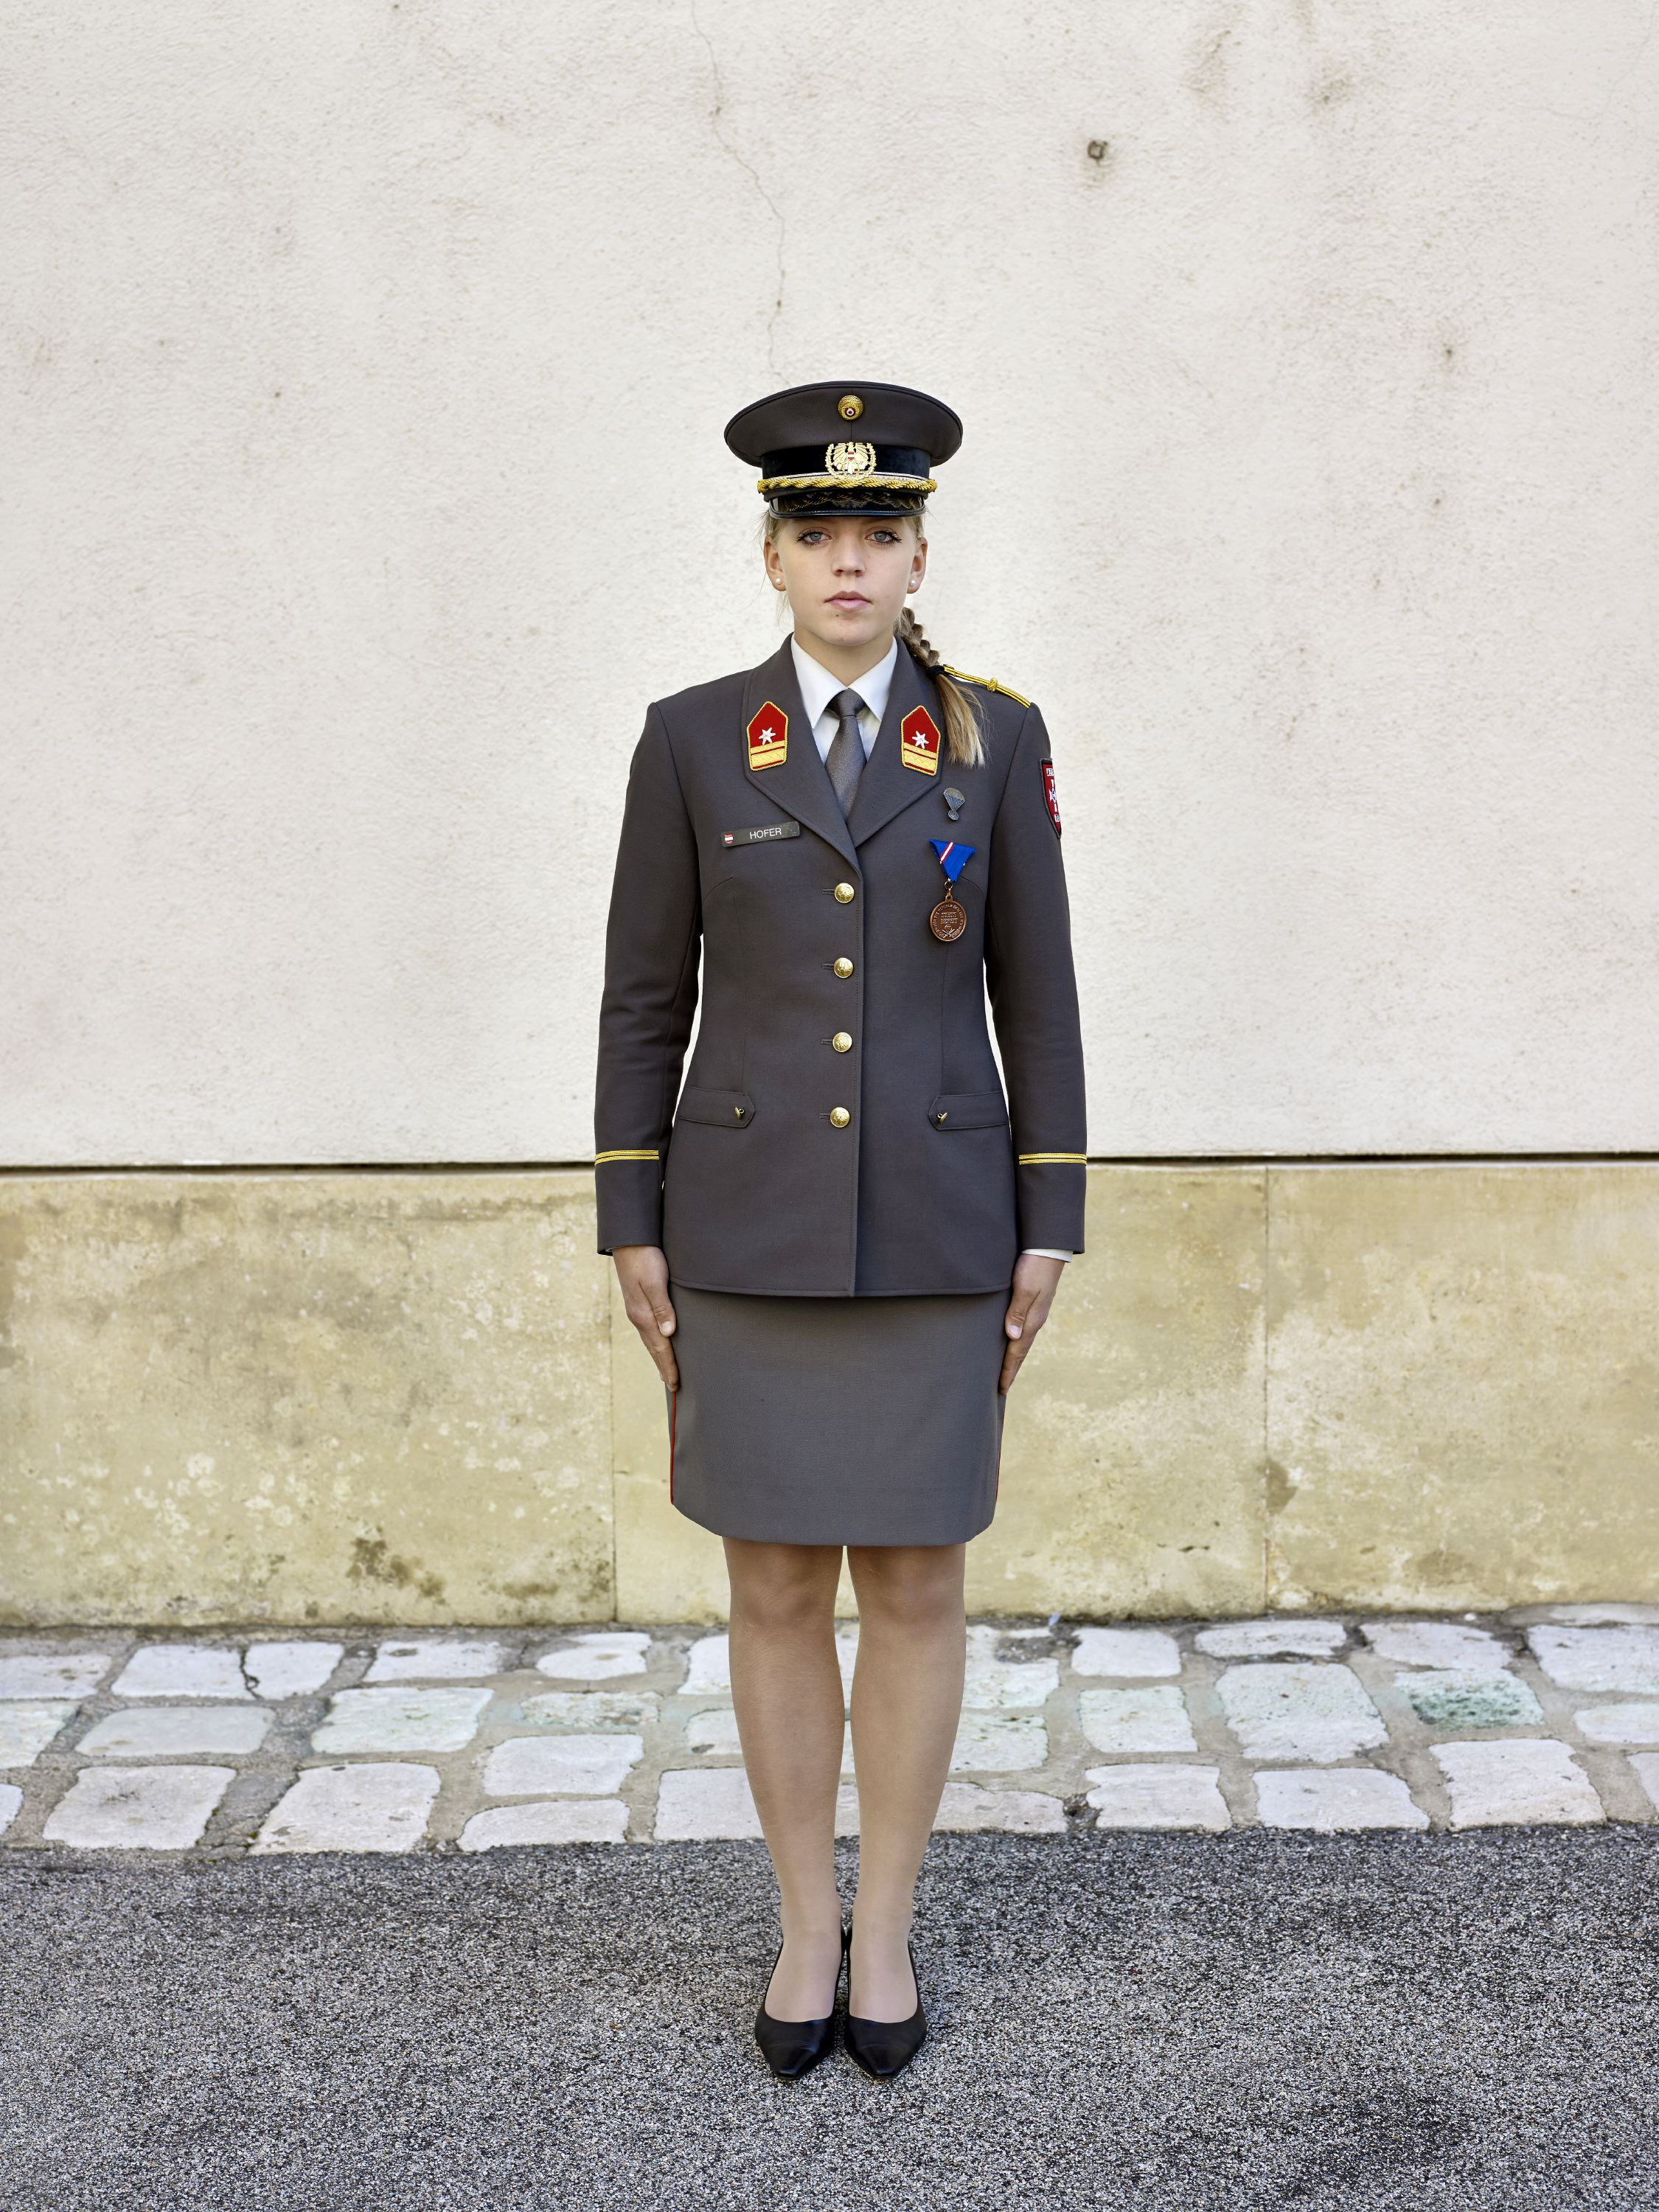 Cadet Hofer is seen at The Theresian Military Academy, Wiener Neustadt, Austria, Oct. 18, 2011.